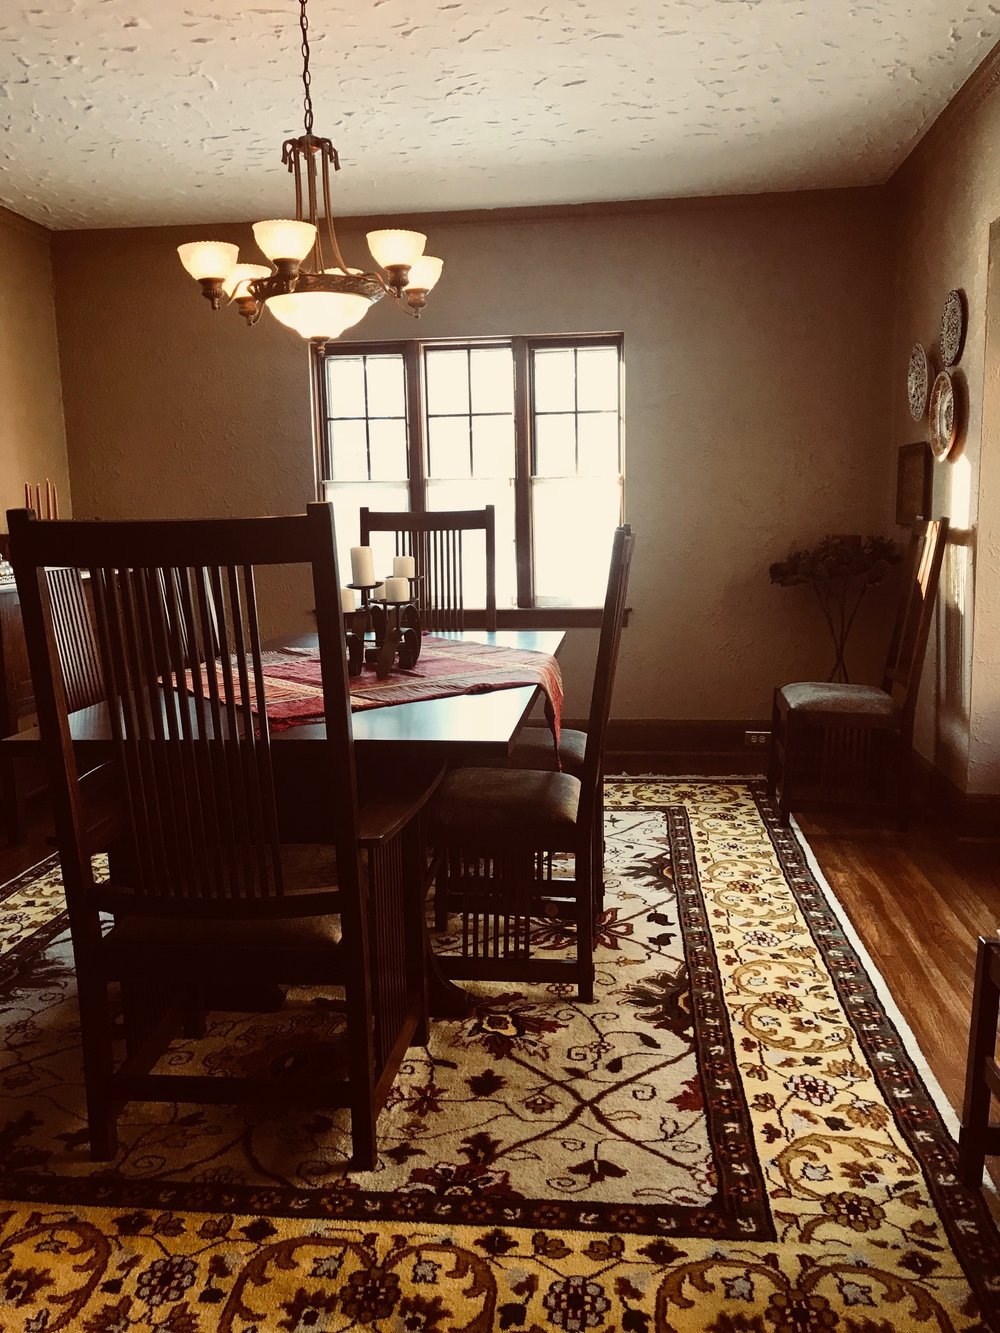 CURRENT VIEW OF DINING ROOM